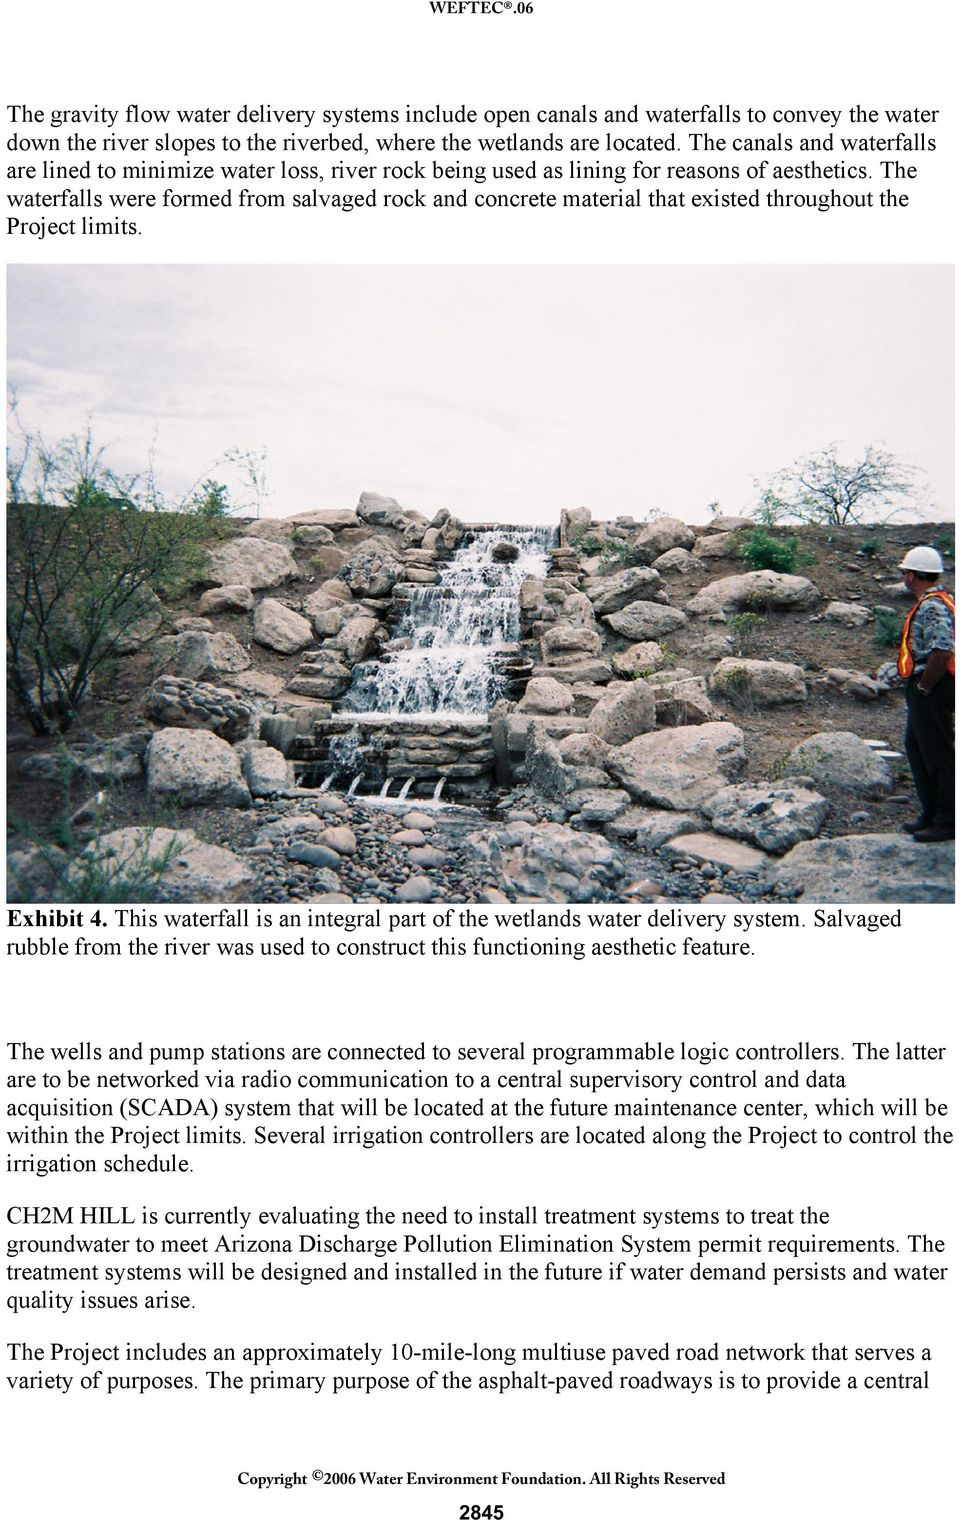 The waterfalls were formed from salvaged rock and concrete material that existed throughout the Project limits. Exhibit 4. This waterfall is an integral part of the wetlands water delivery system.